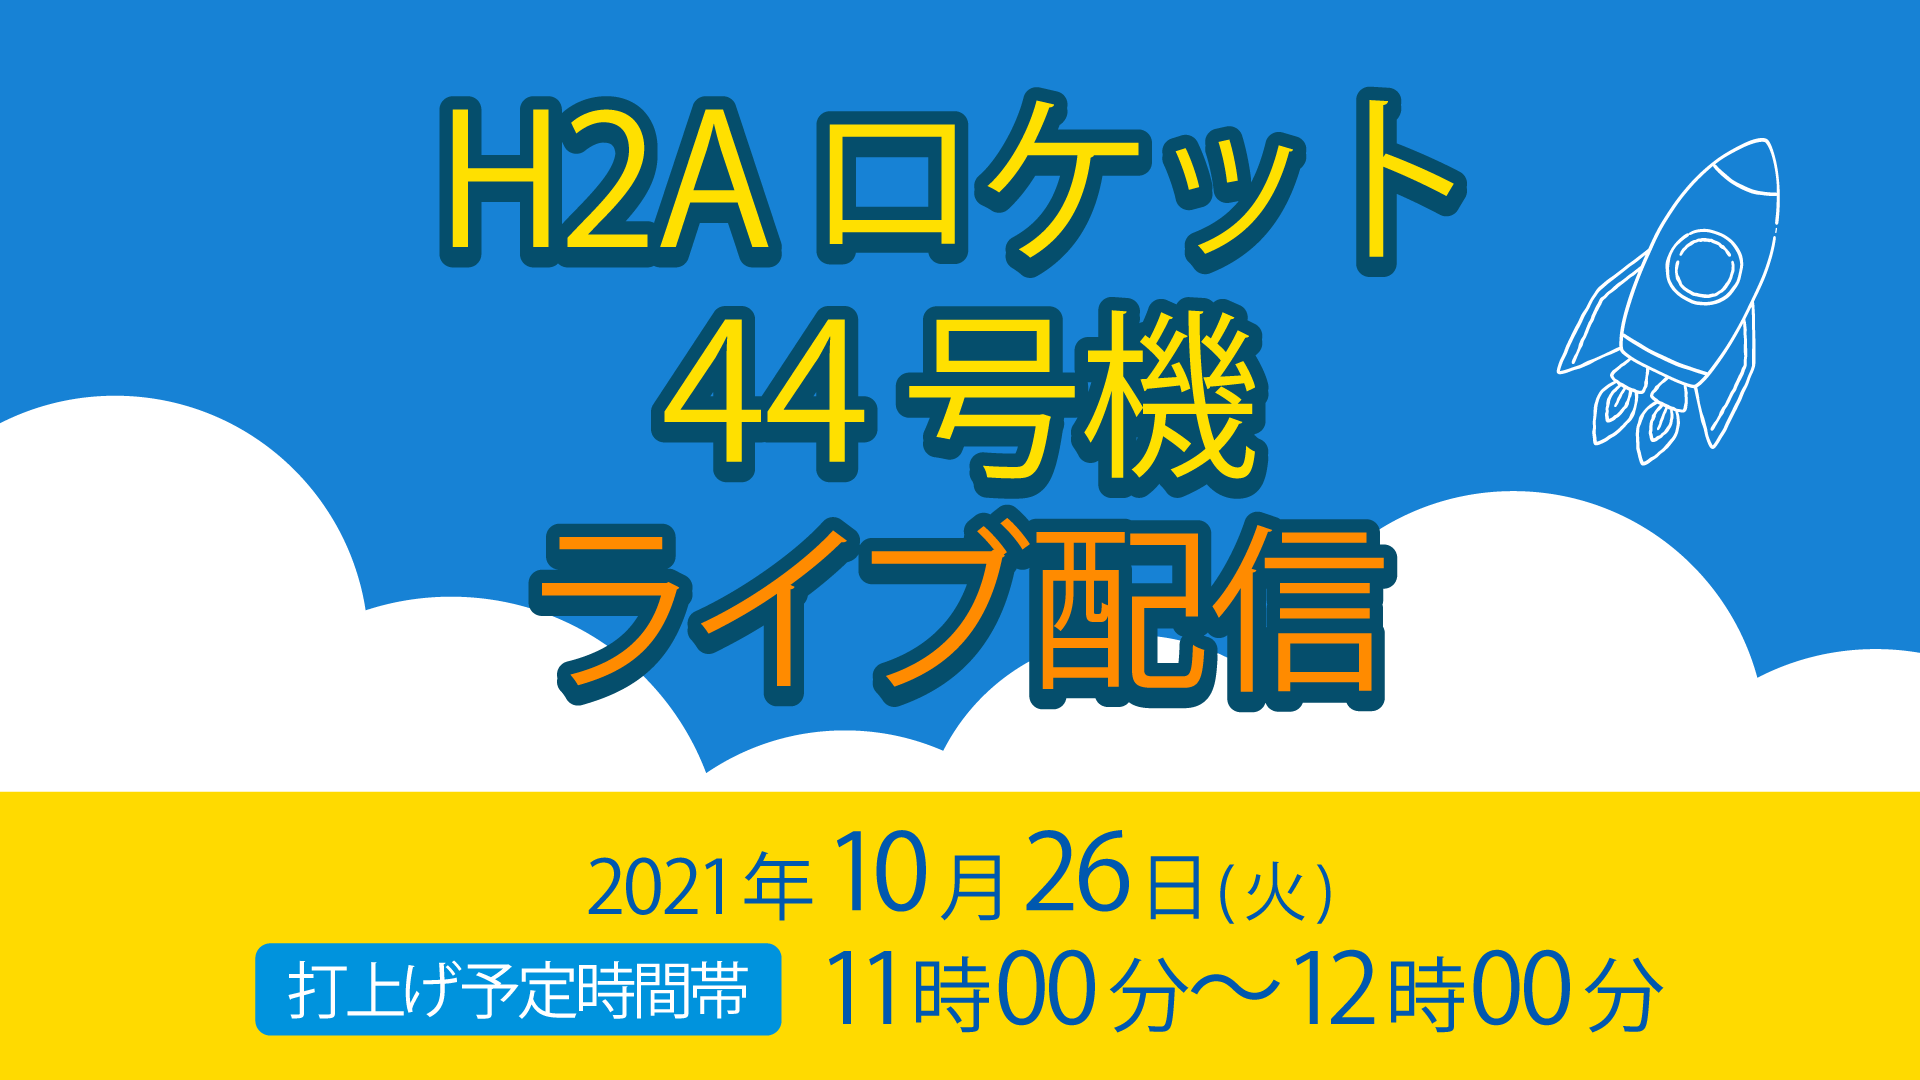 H2Aロケット44号機打ち上げ